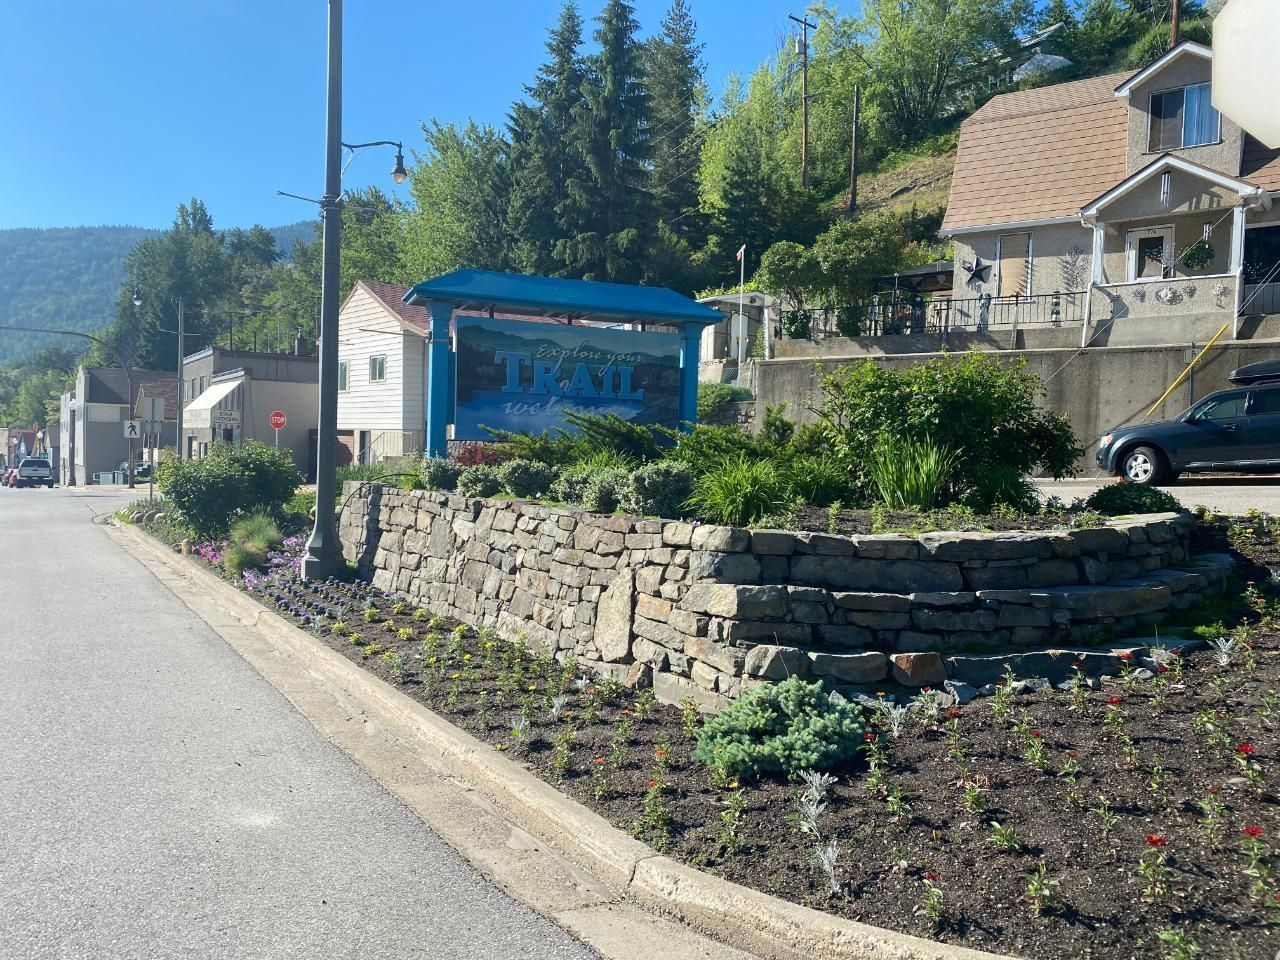 Photo 2: Photos: 328 ROSSLAND AVENUE in Trail: Retail for sale : MLS®# 2459289